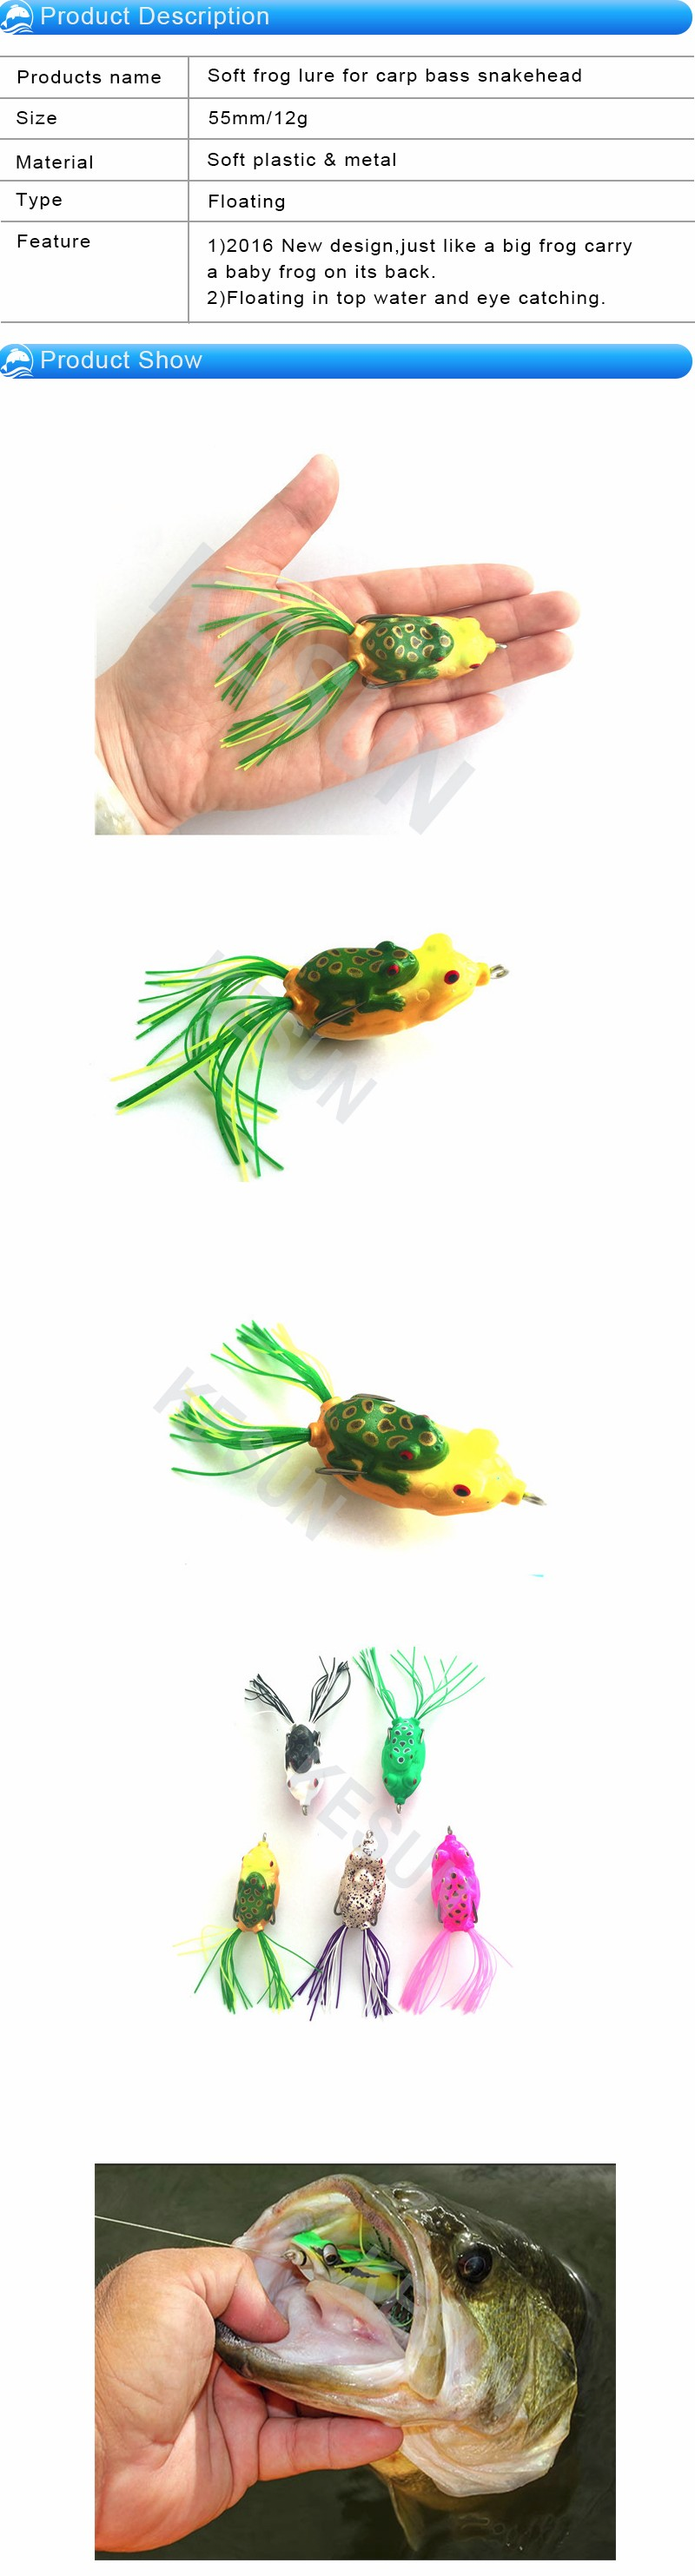 Wholesale in stock soft frog lure for carp bass snakehead freshwater fishing